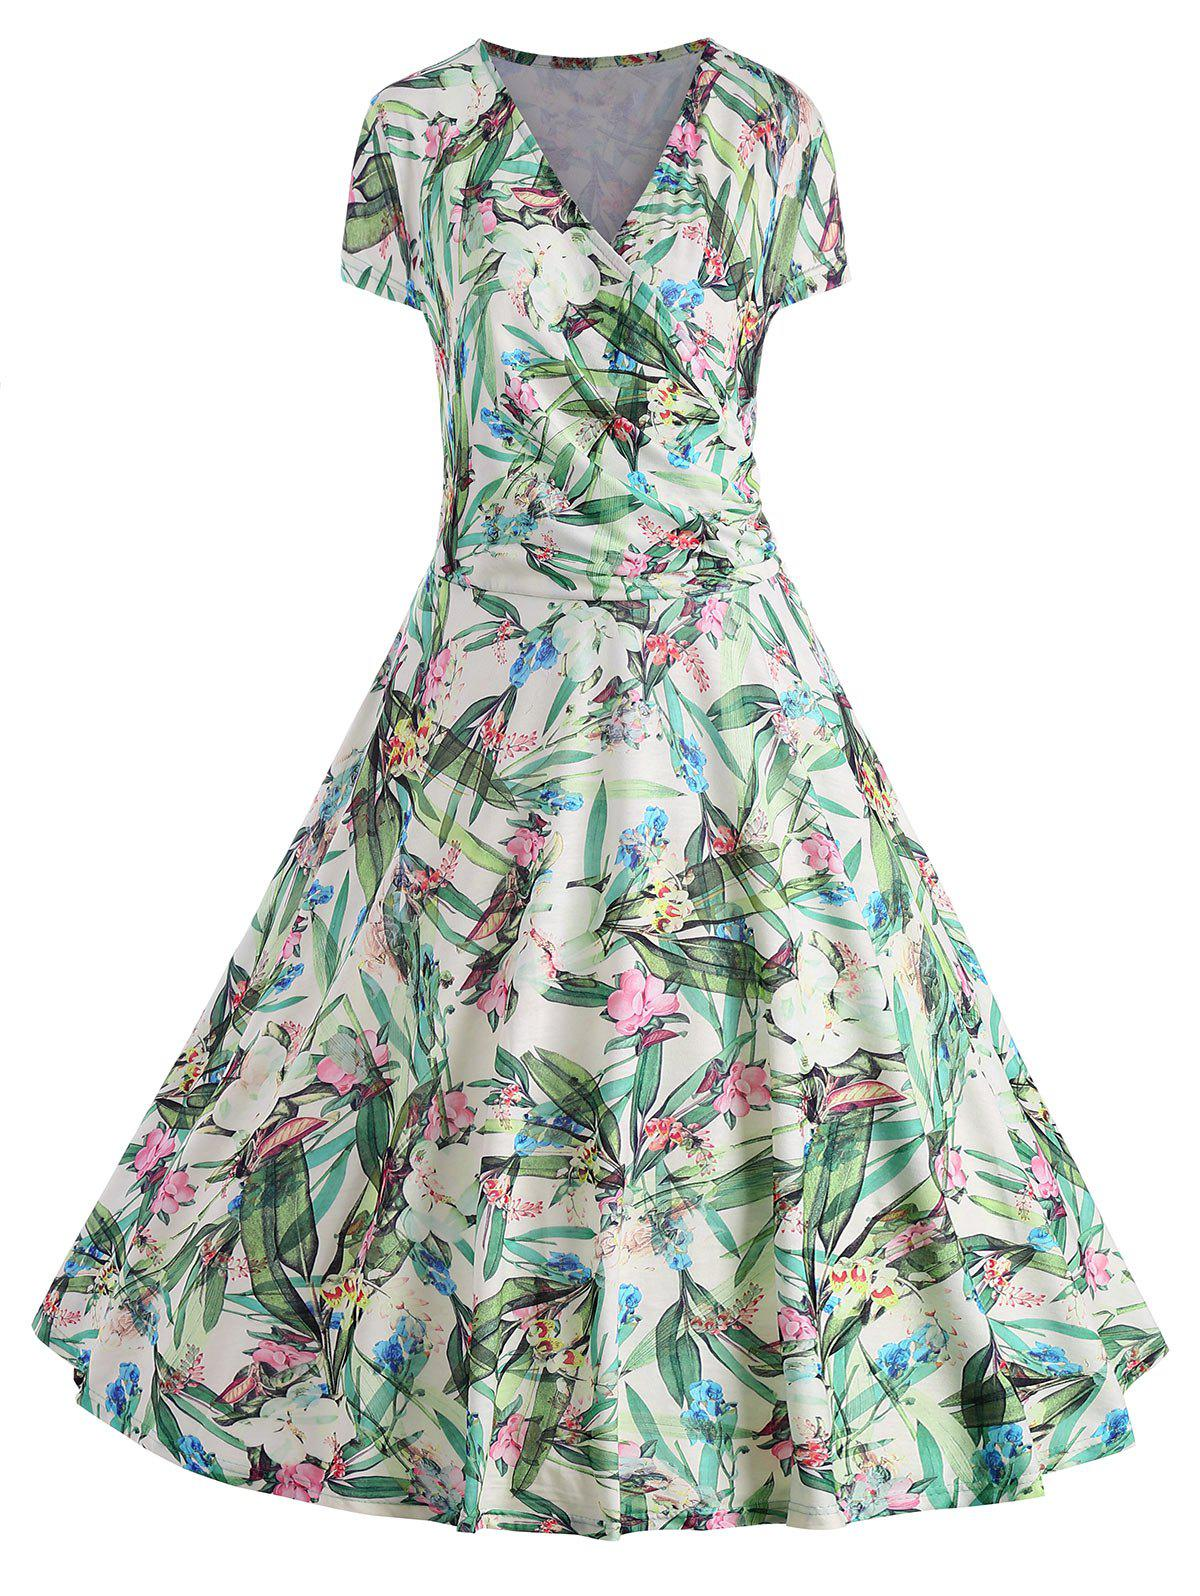 Online Leaves Floral Print Plus Size Surplice Dress